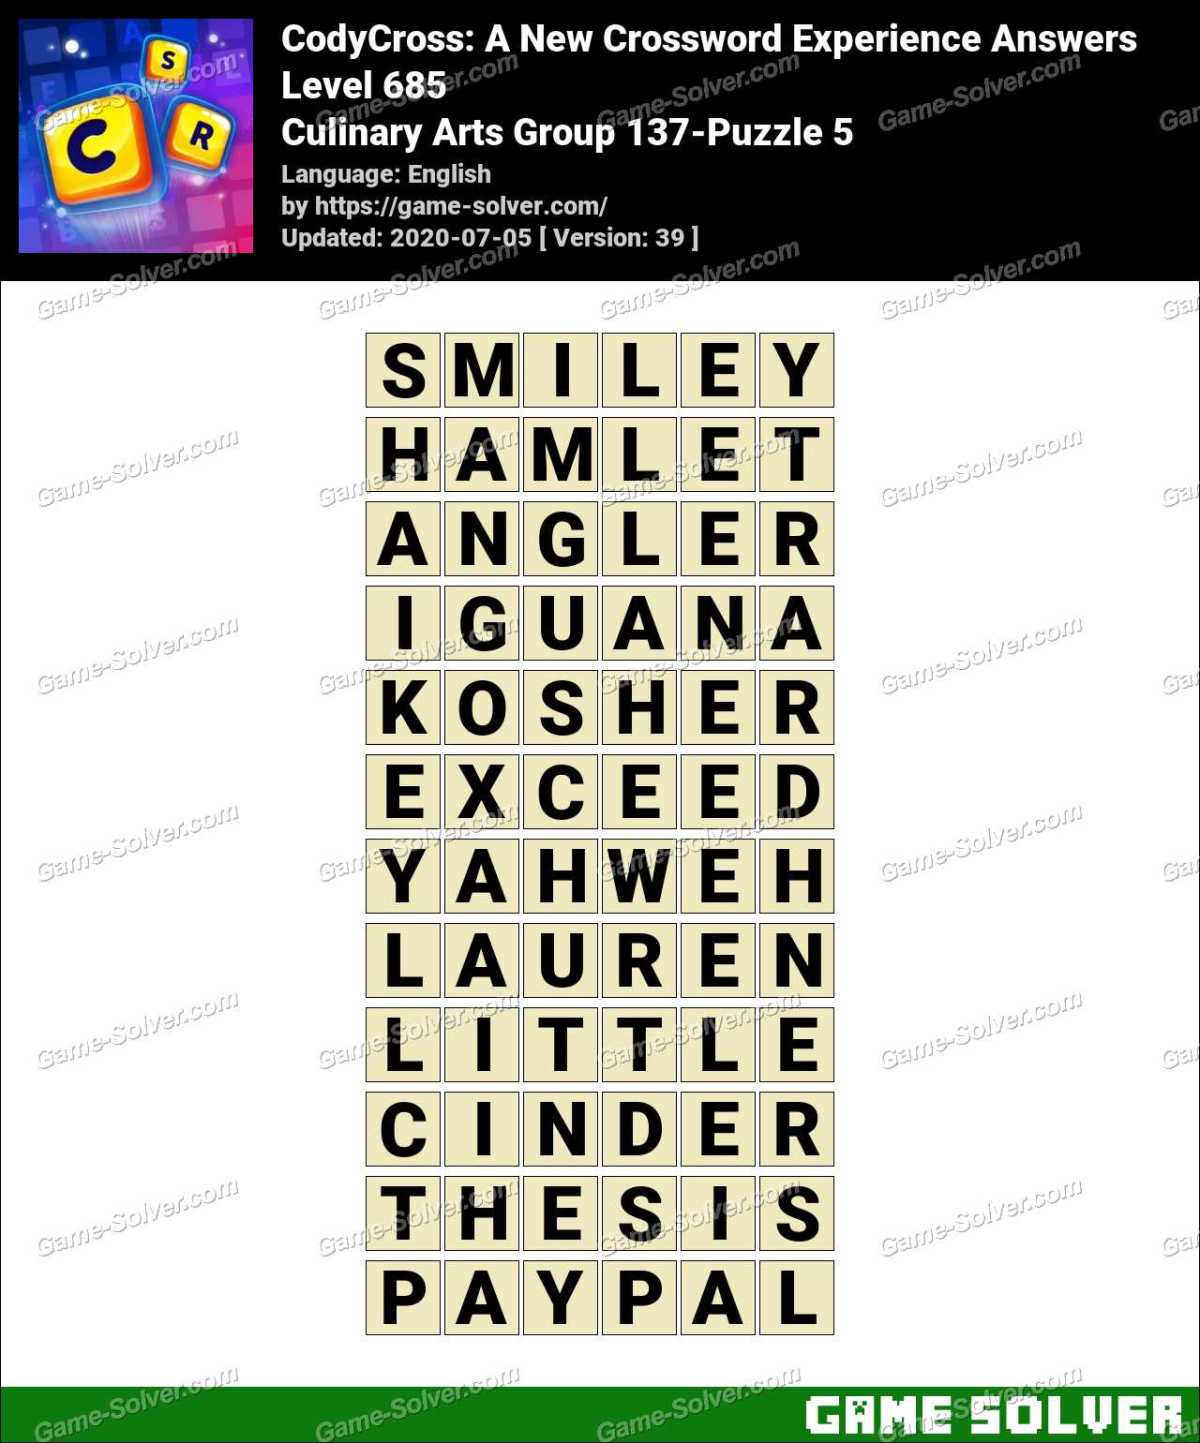 CodyCross Culinary Arts Group 137-Puzzle 5 Answers